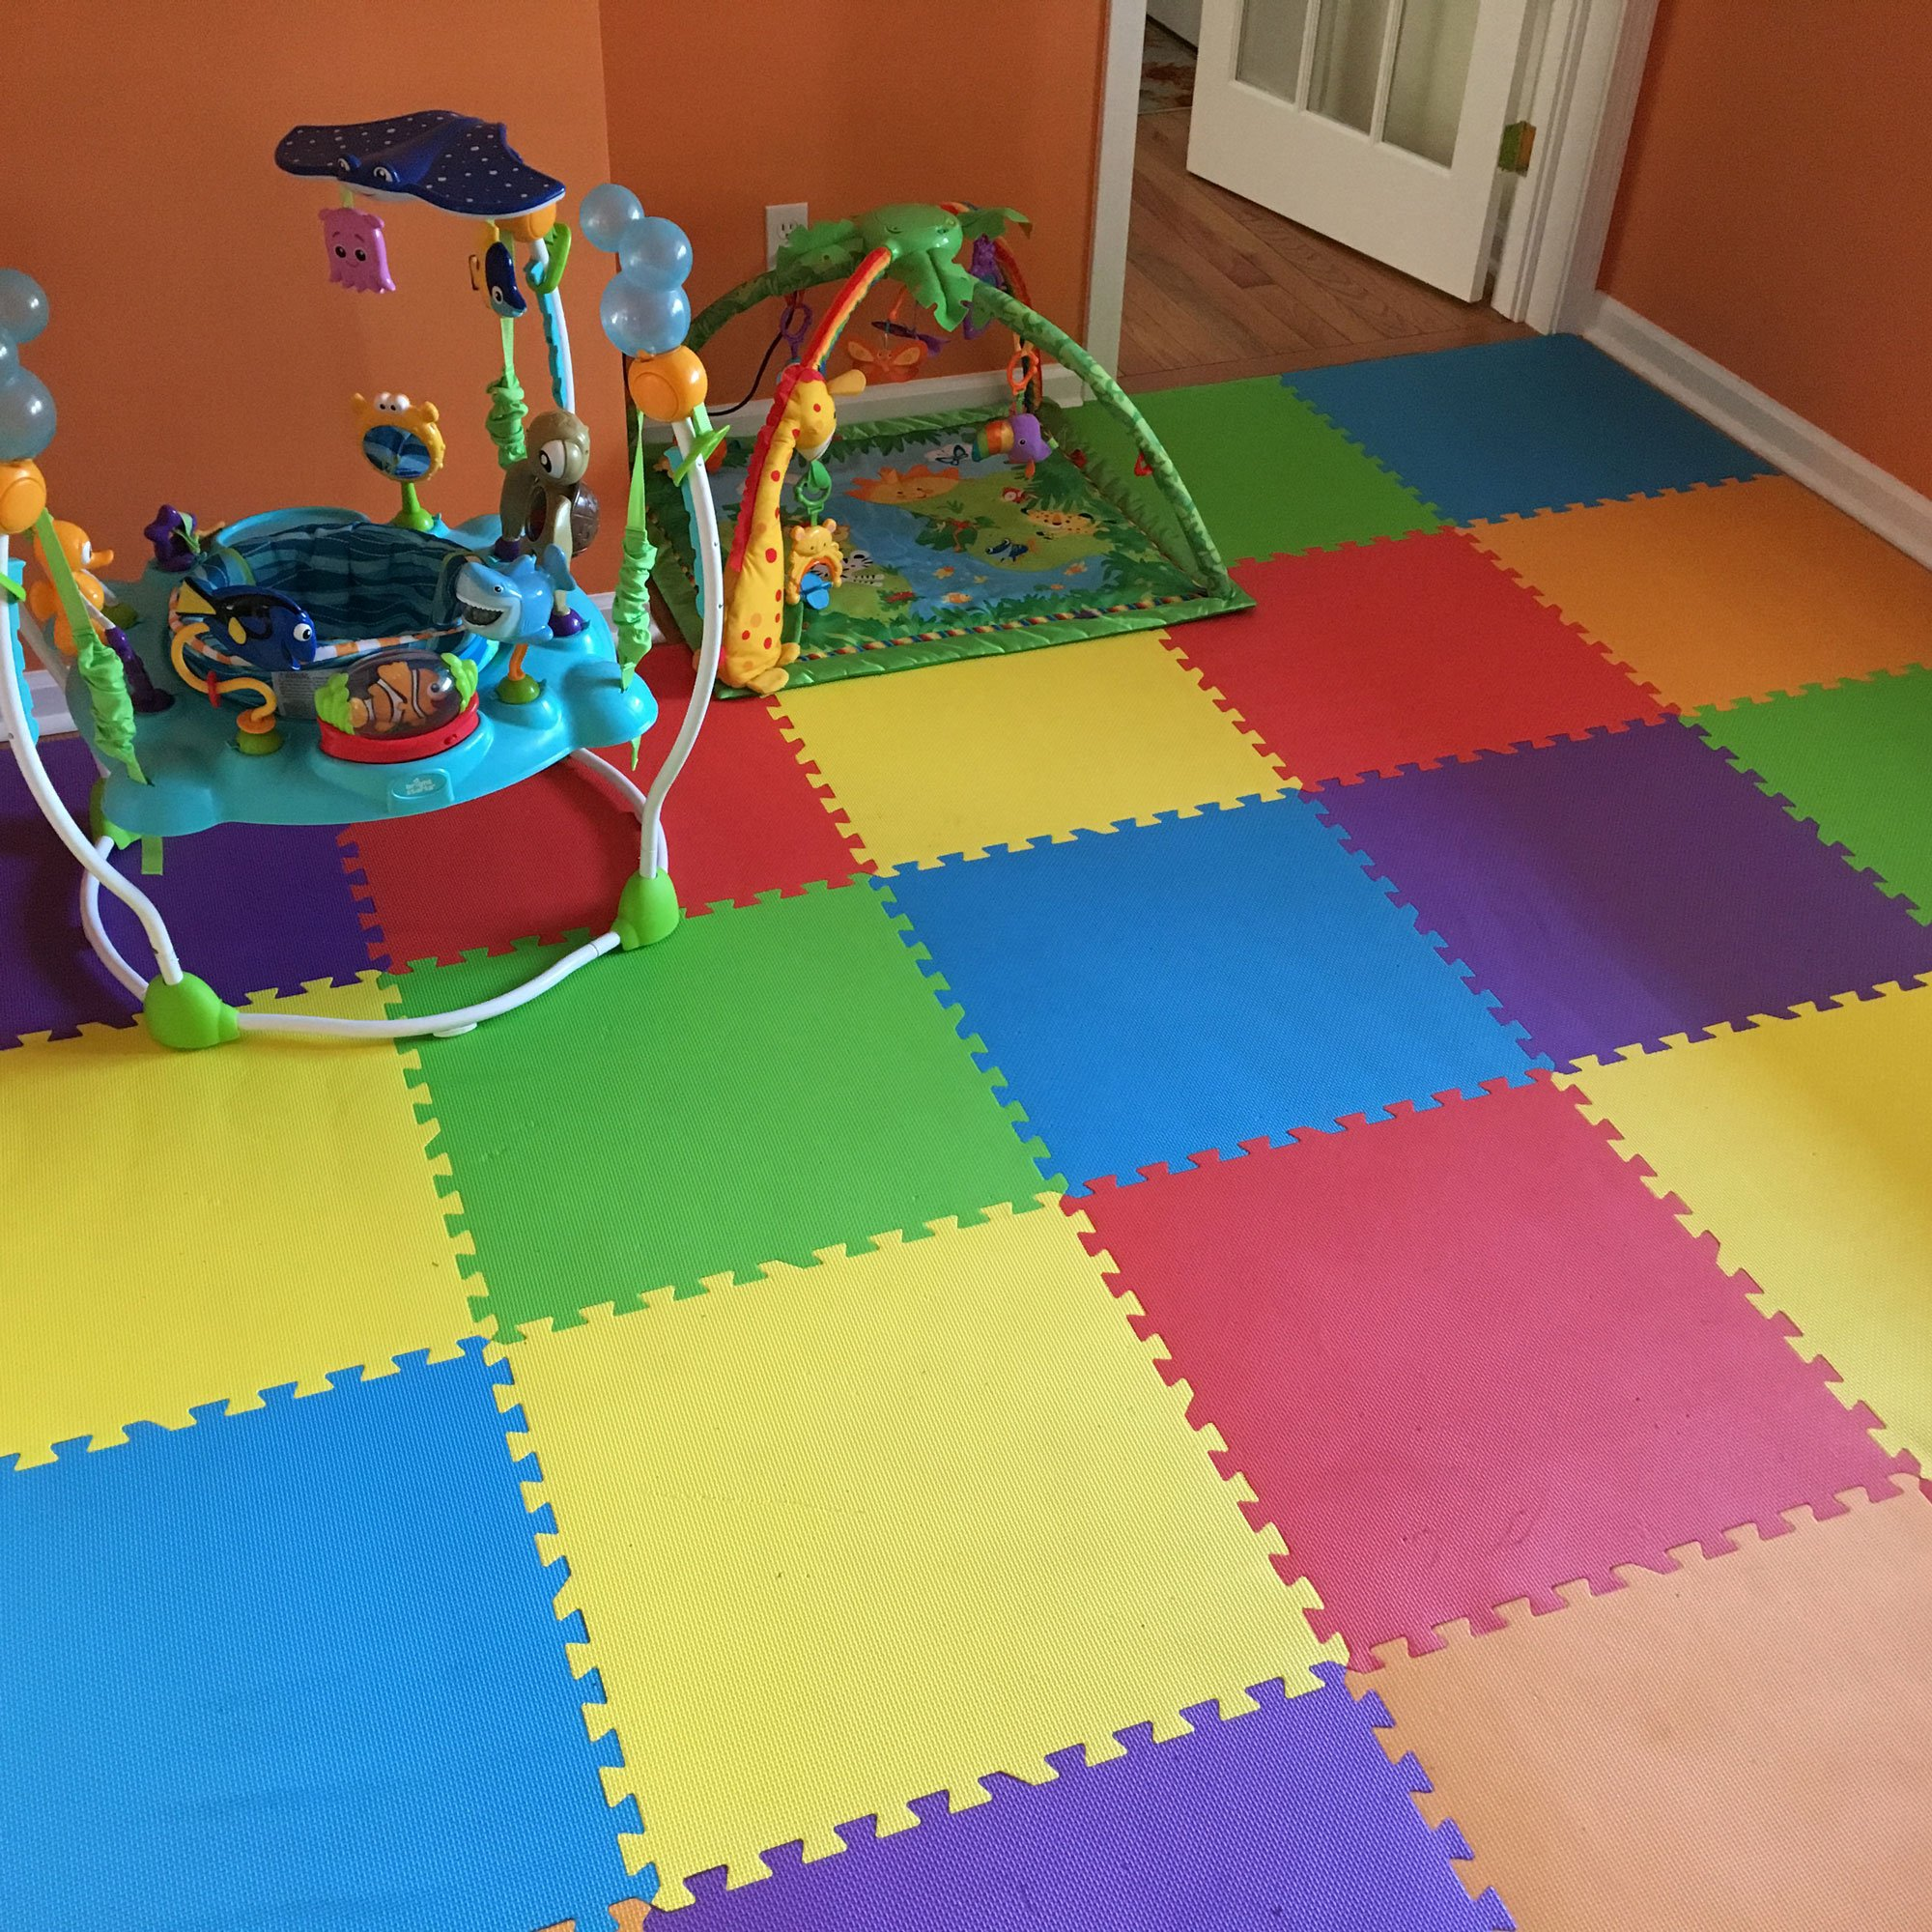 IncStores - Rainbow Foam Tiles (12 Pack) - 2ft x 2ft Interlocking Foam Children's Portable Playmats by IncStores (Image #1)